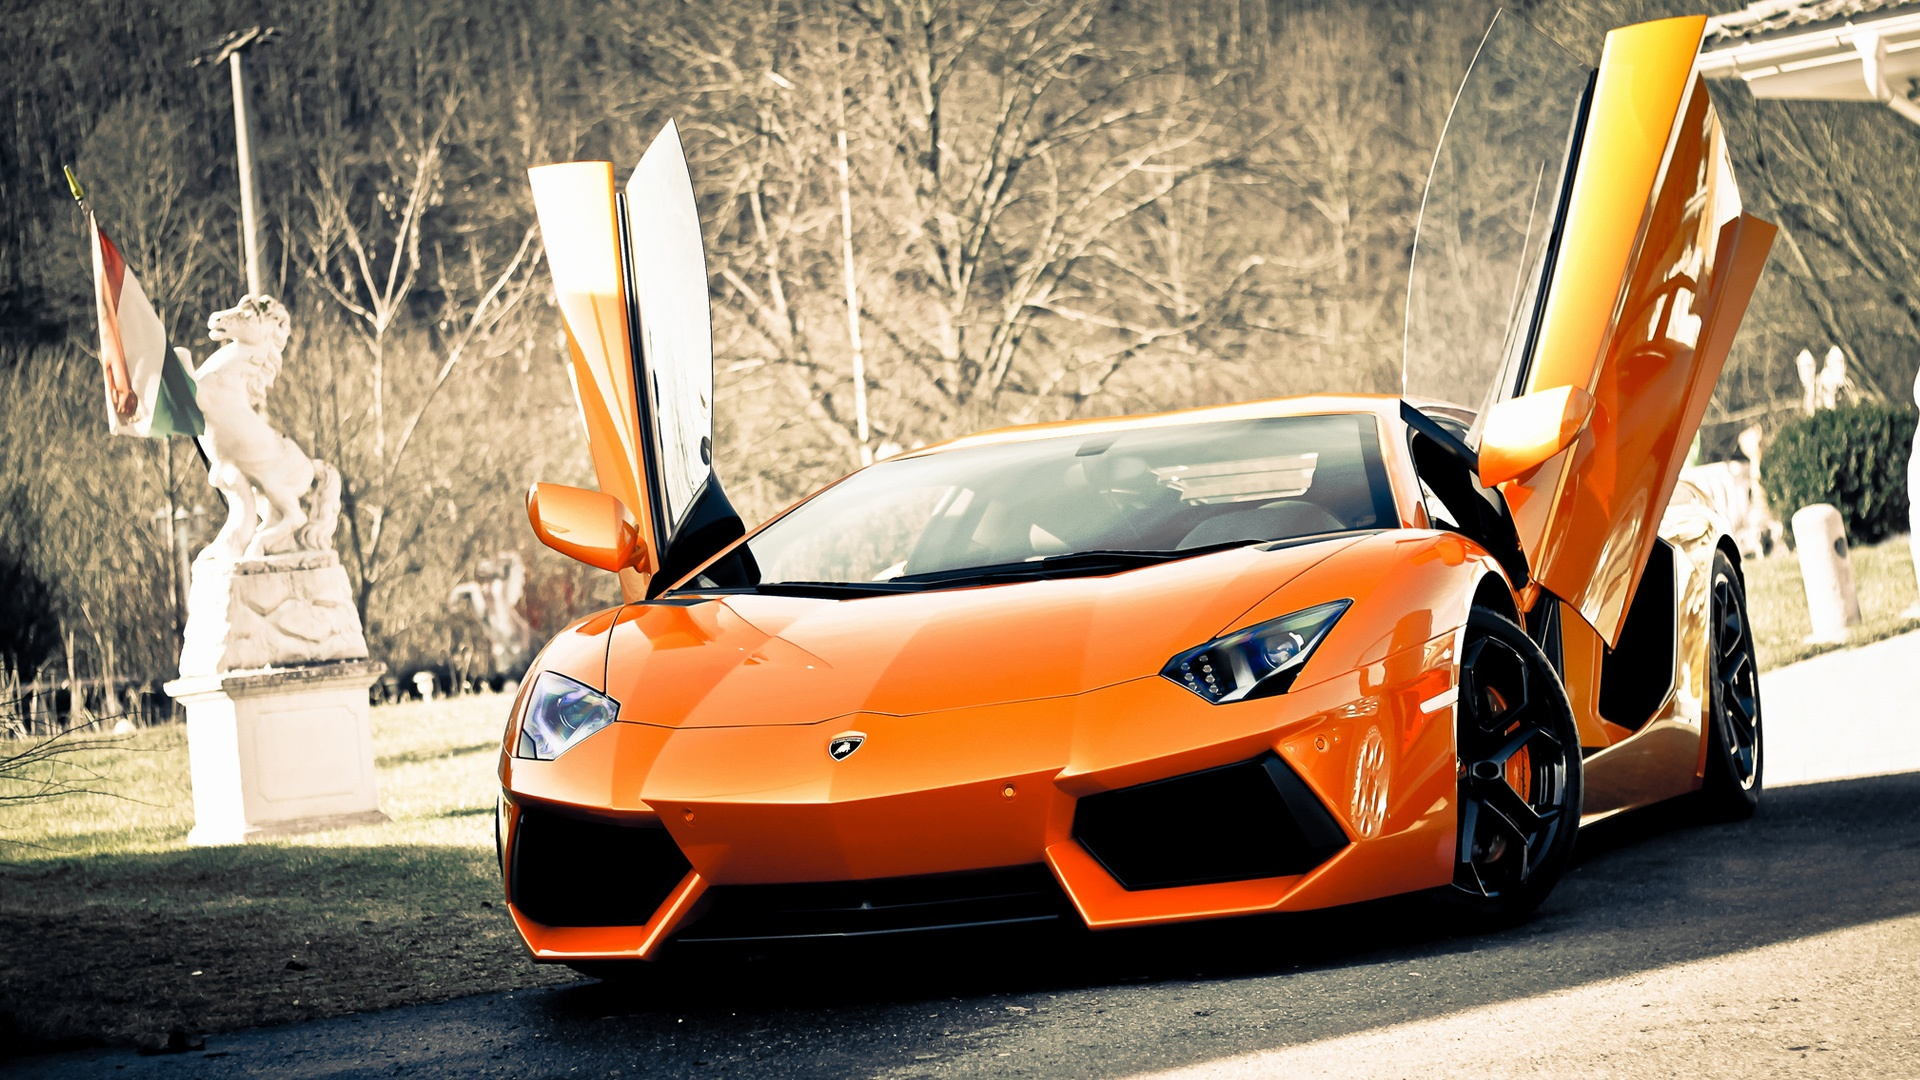 Nice Super Lamborghini Aventador Car Wallpapers